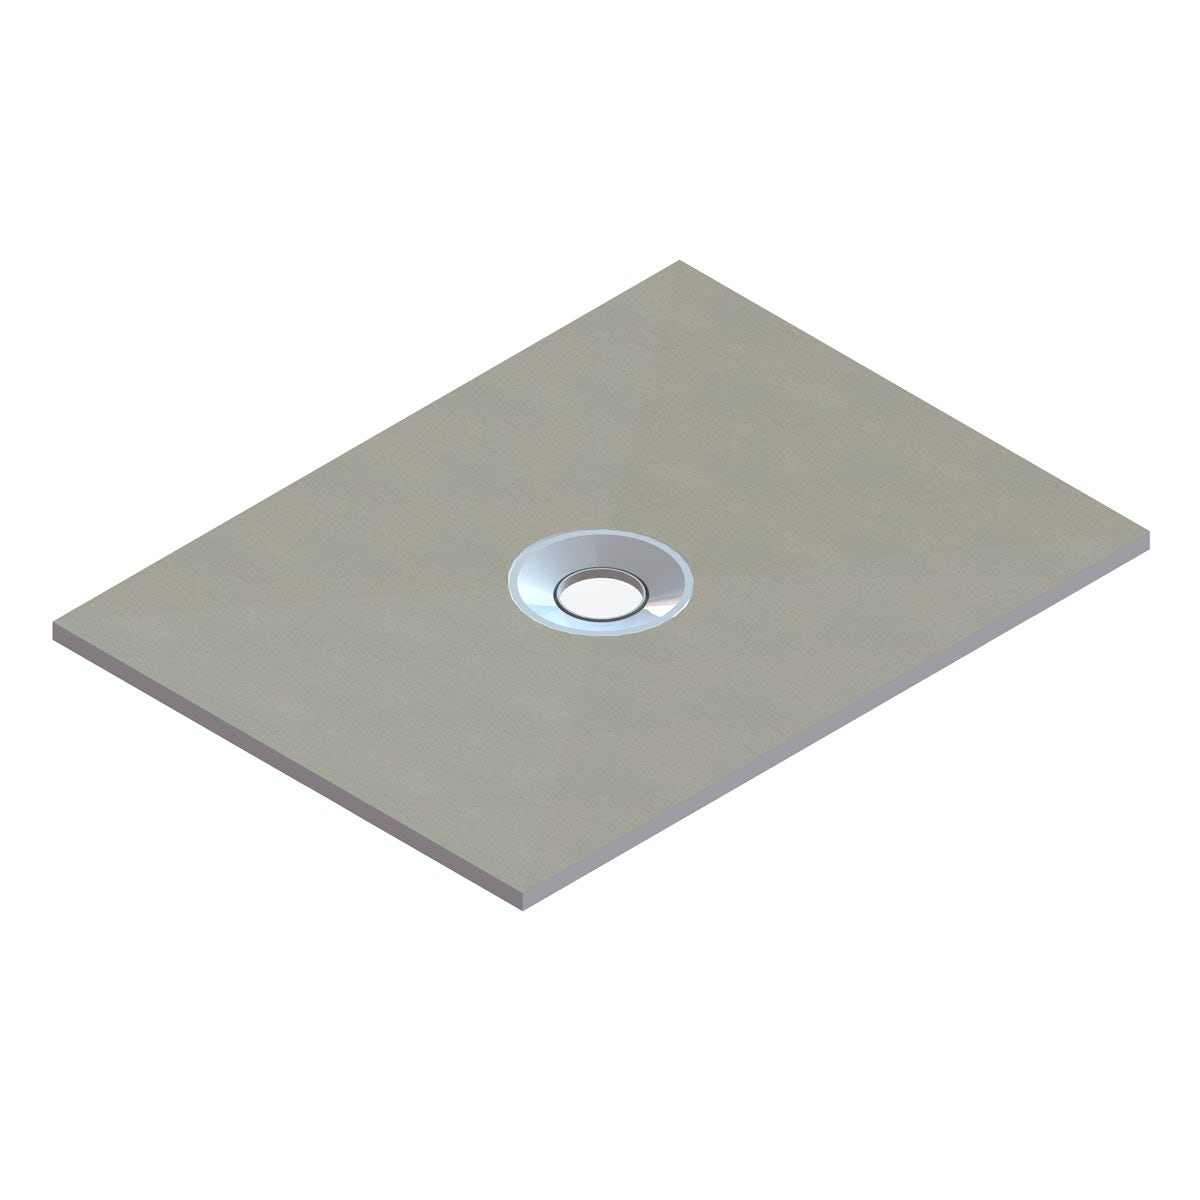 Orchard rectangular wet room tray former with centre waste position 1200 x 900